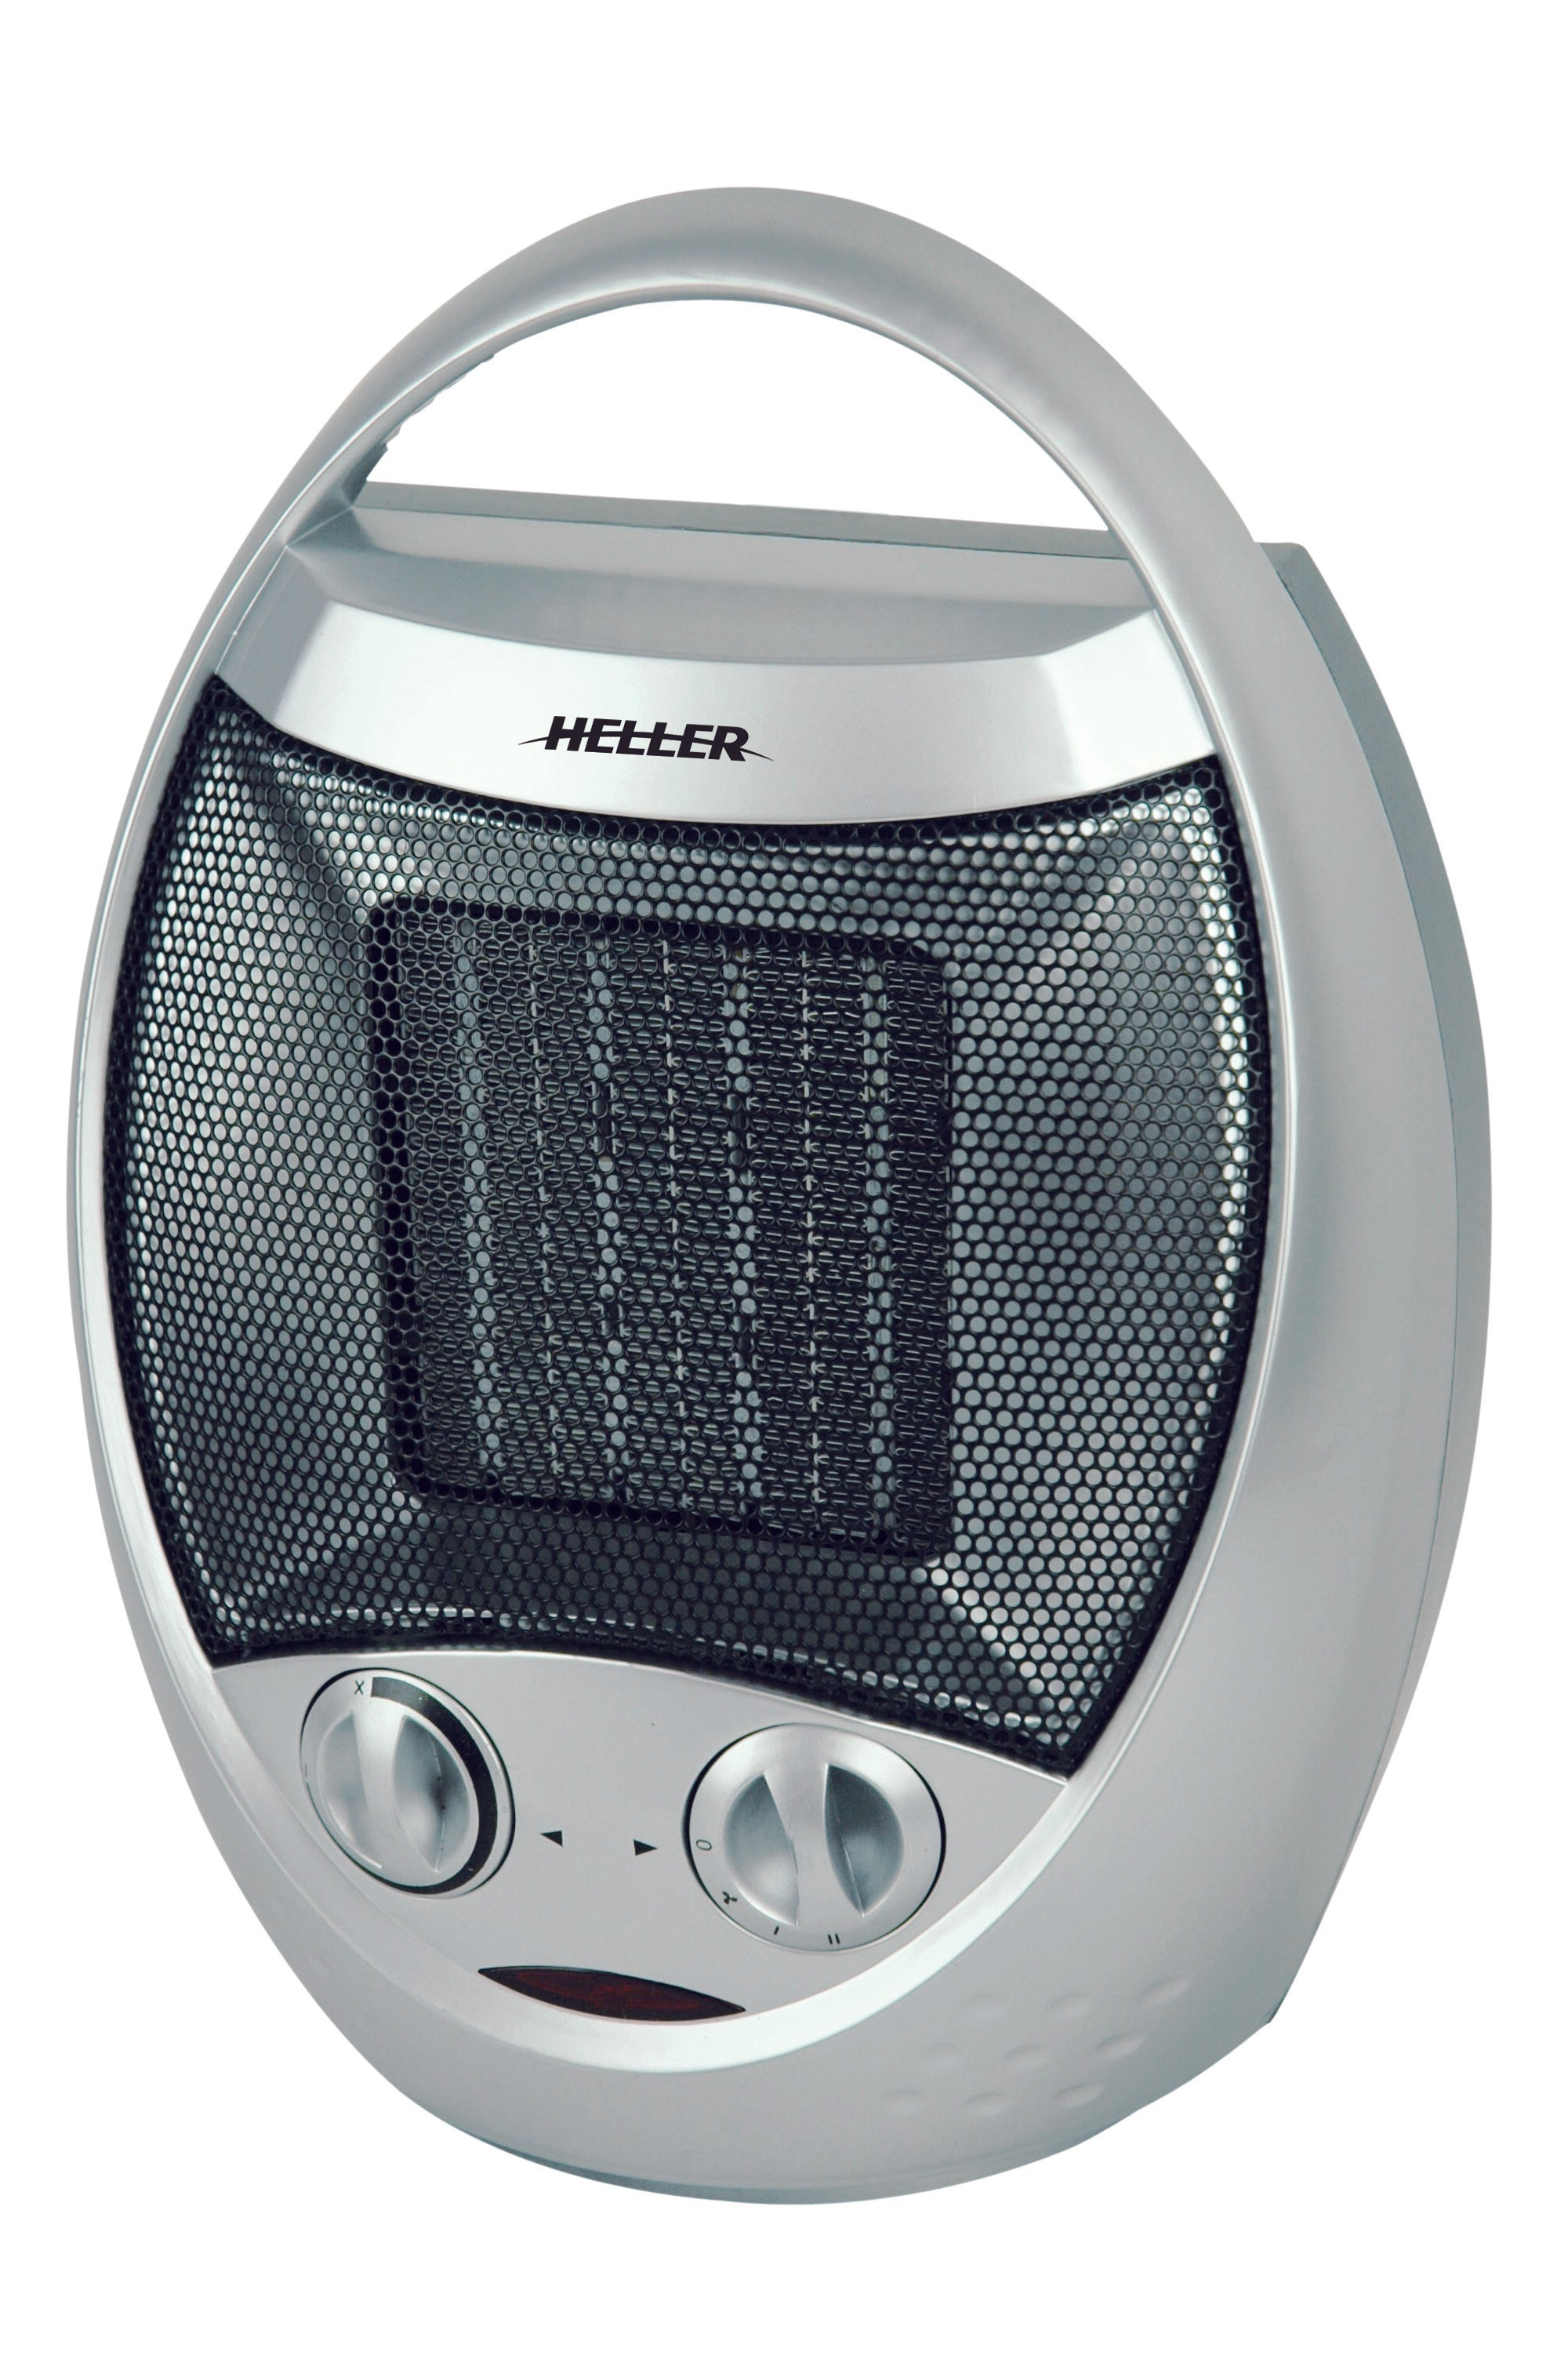 1500W Upright Ceramic Heater